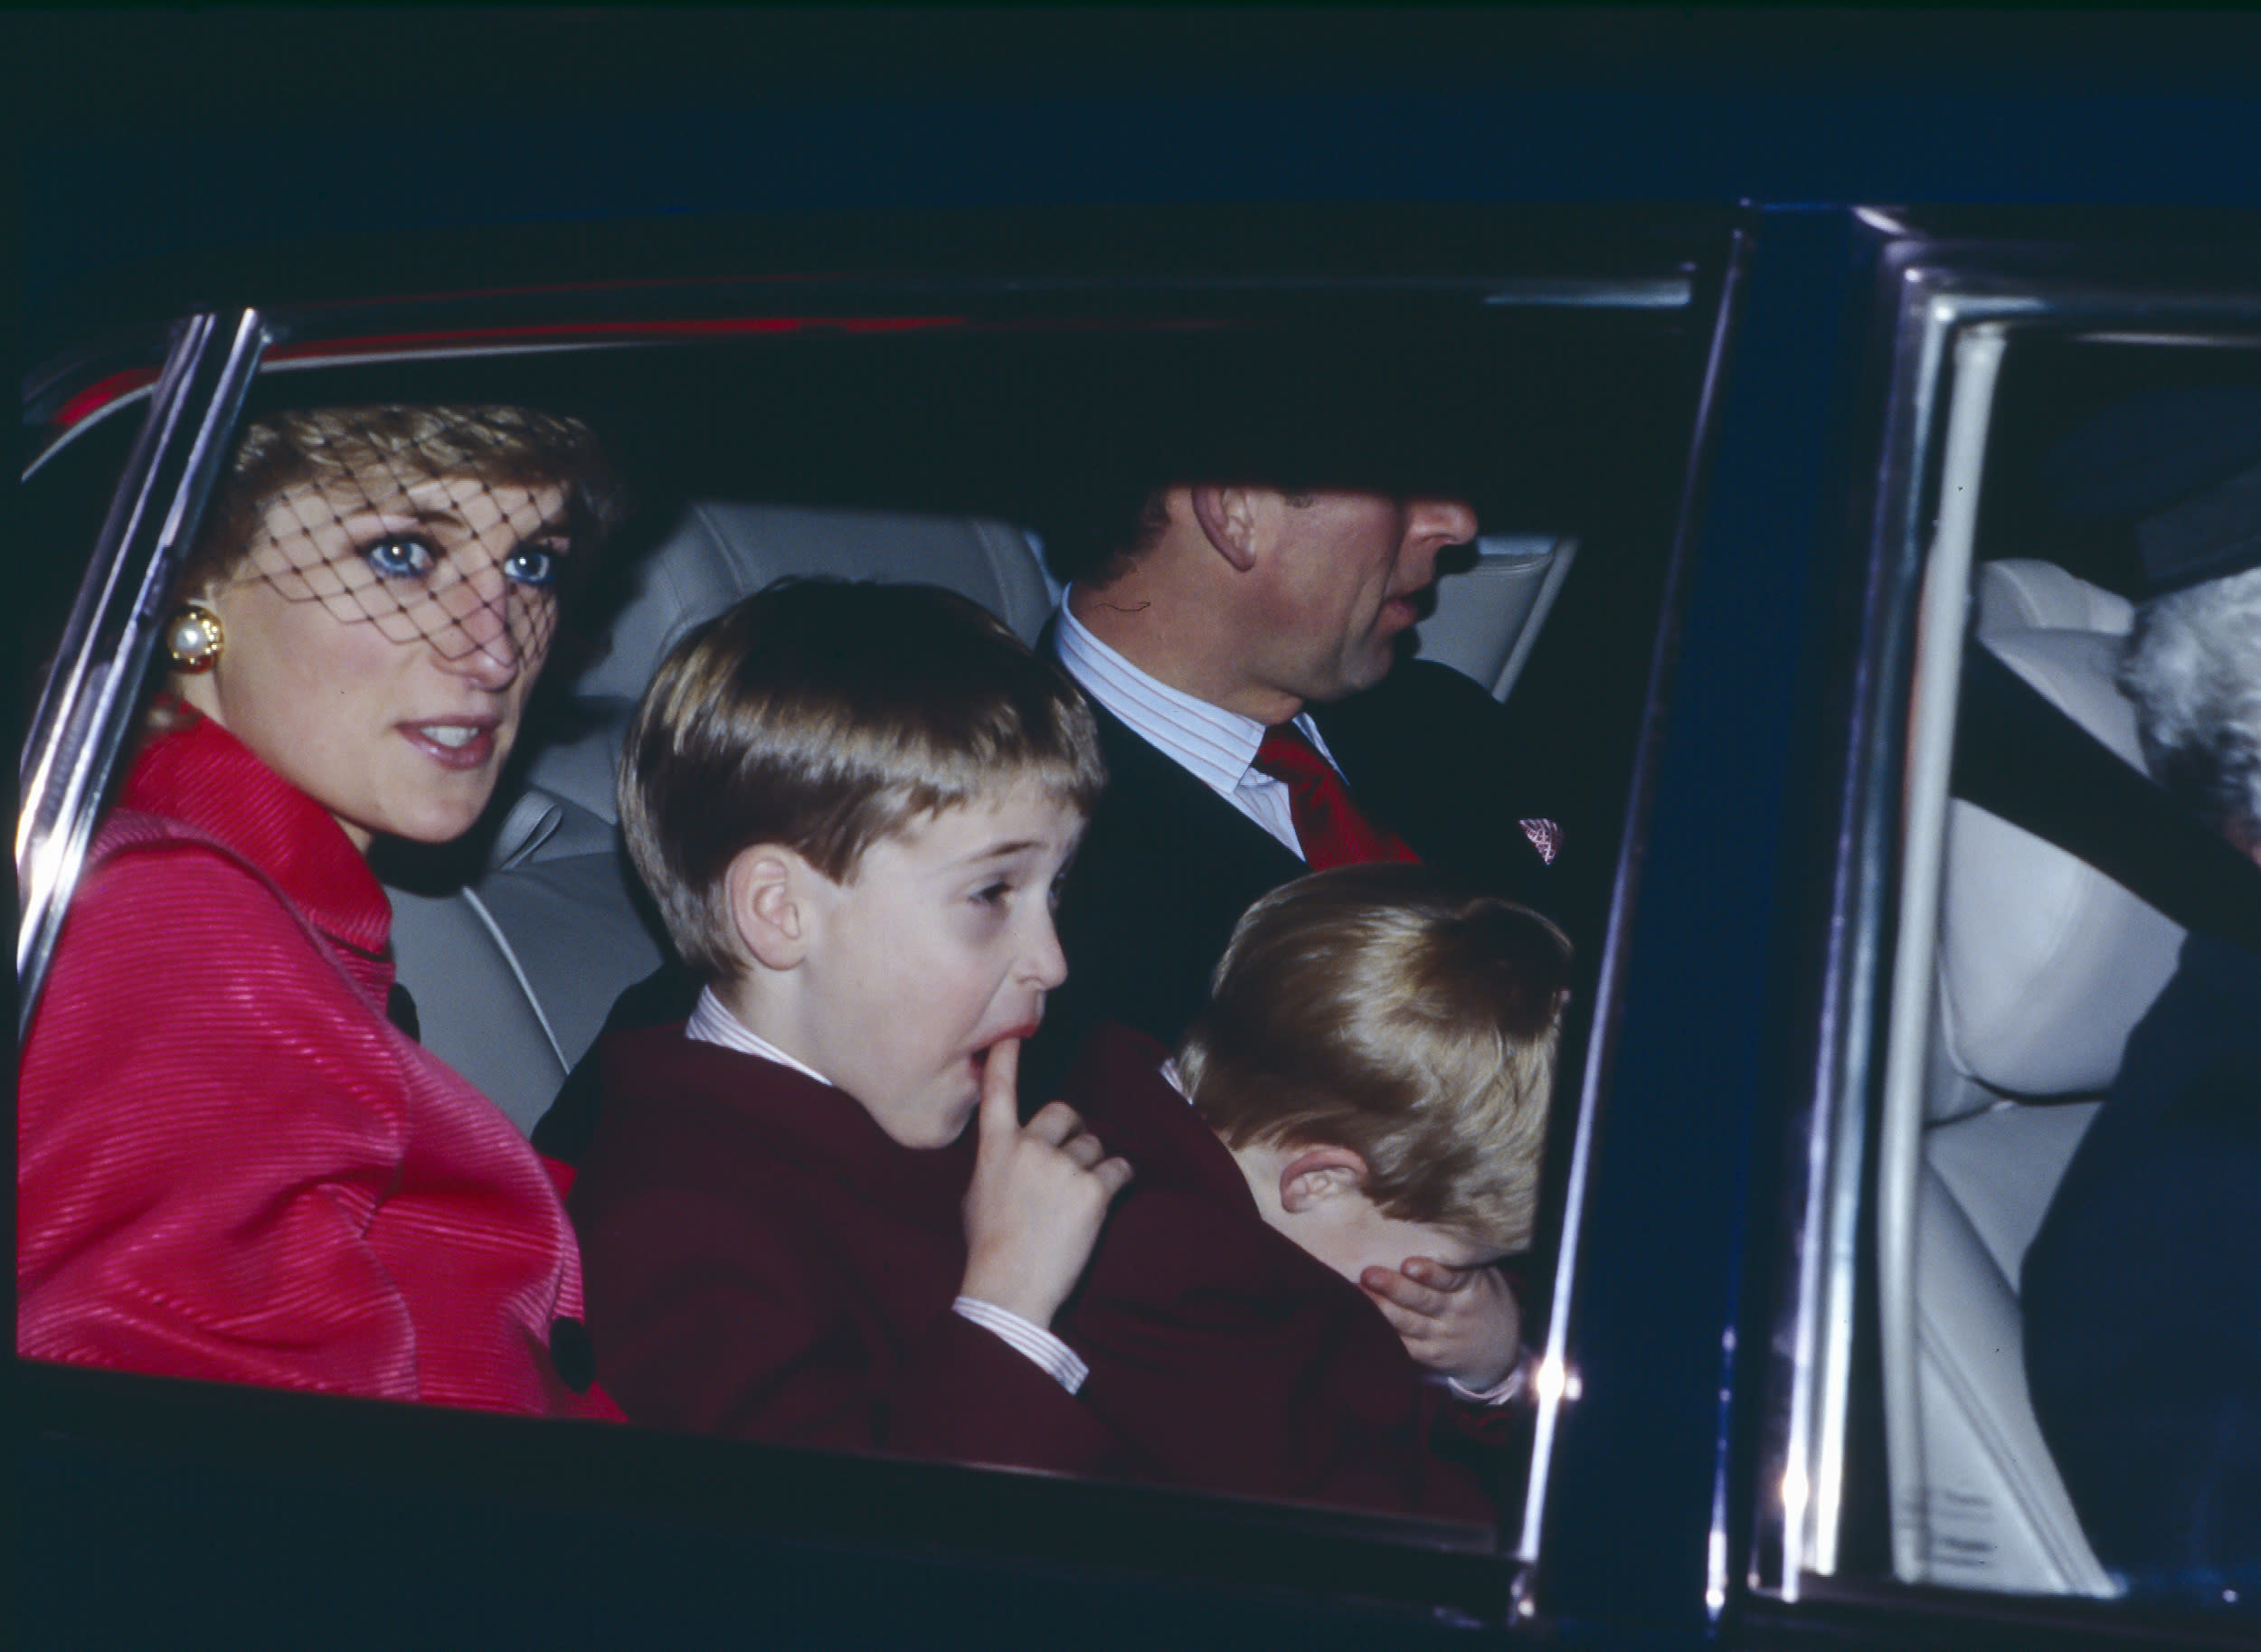 LONDON,  UNITED KINGDOM - DECEMBER 20:   Diana, Princess of Wales, Charles, Prince of Wales, Prince William, and Prince Harry attend the Christening of Princess Beatrice, at St James Palace,  on December 20, 1988  in London, United Kingdom. (Photo by Julian Parker/UK Press via Getty Images)